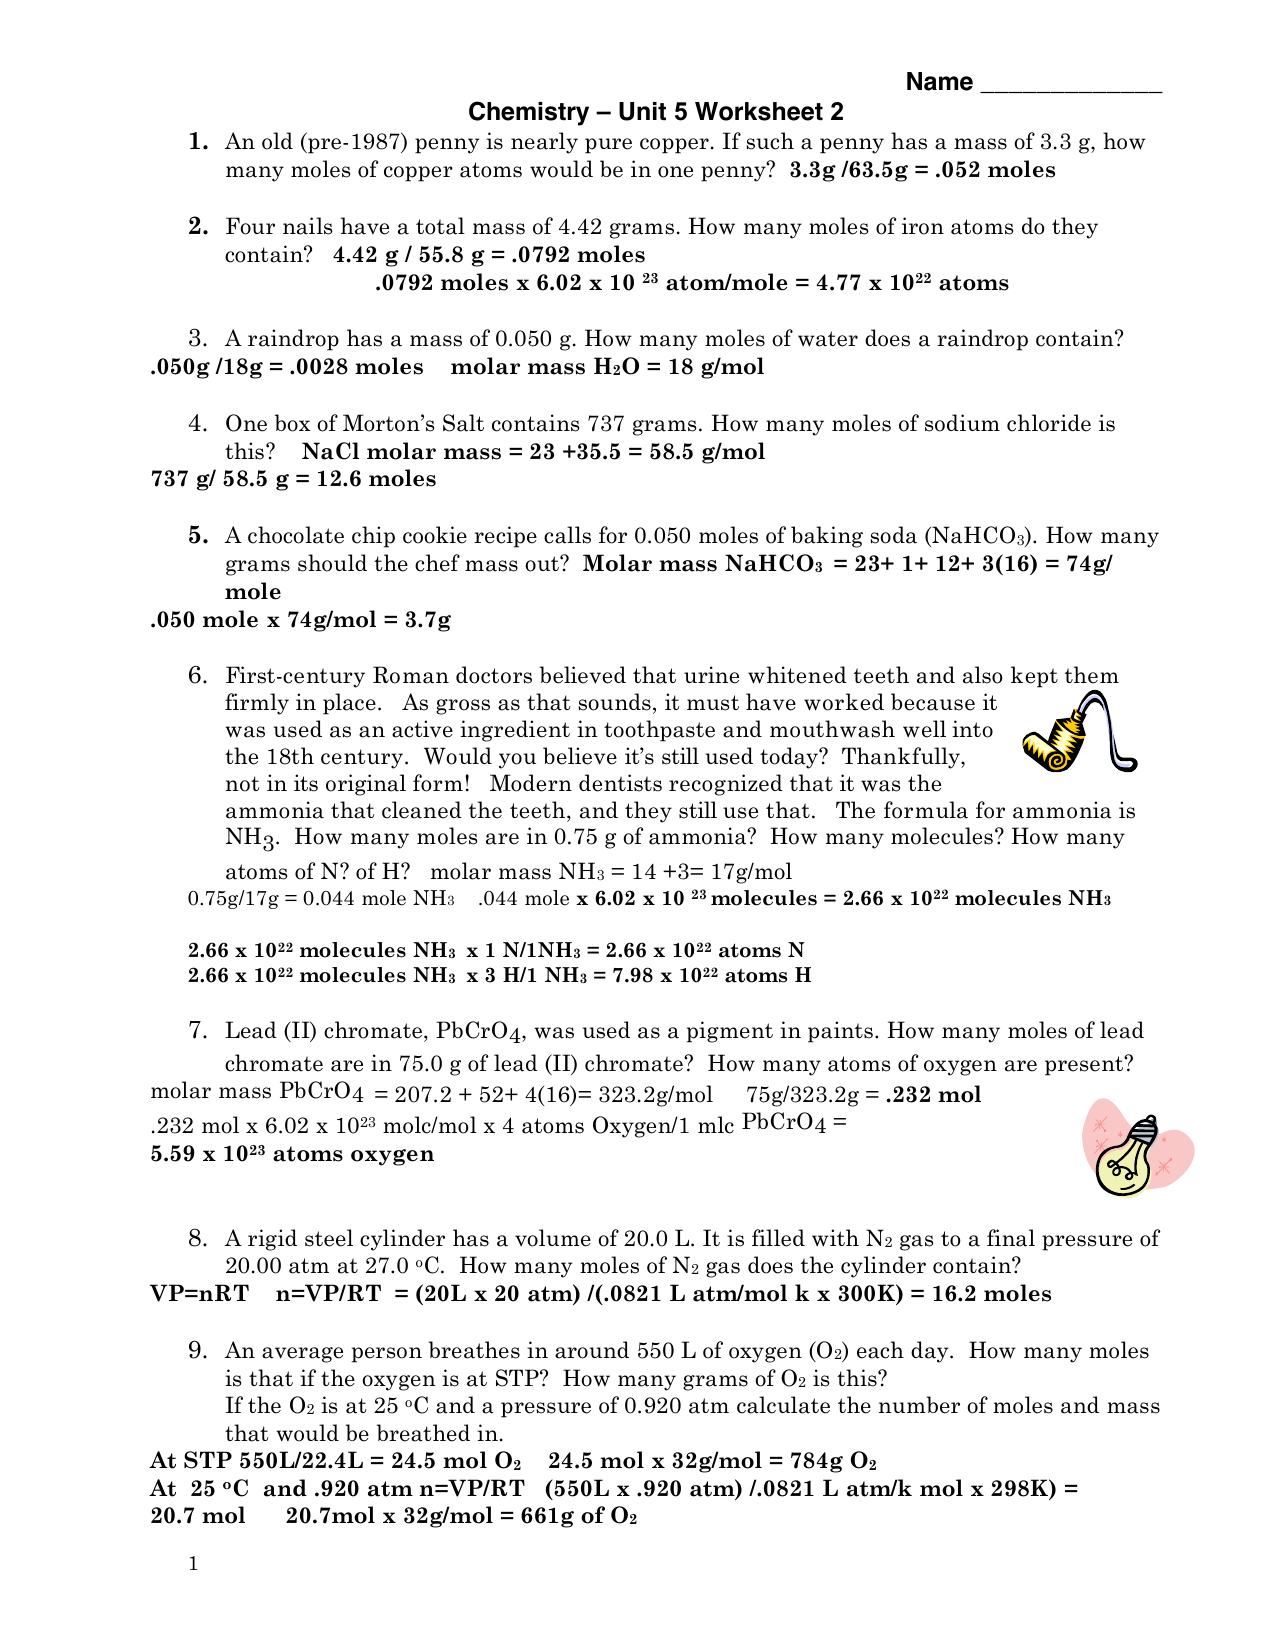 Uncategorized The Mole And Volume Worksheet 008715394 1 b02cb14282d758a9d477ea7bb479df8a png